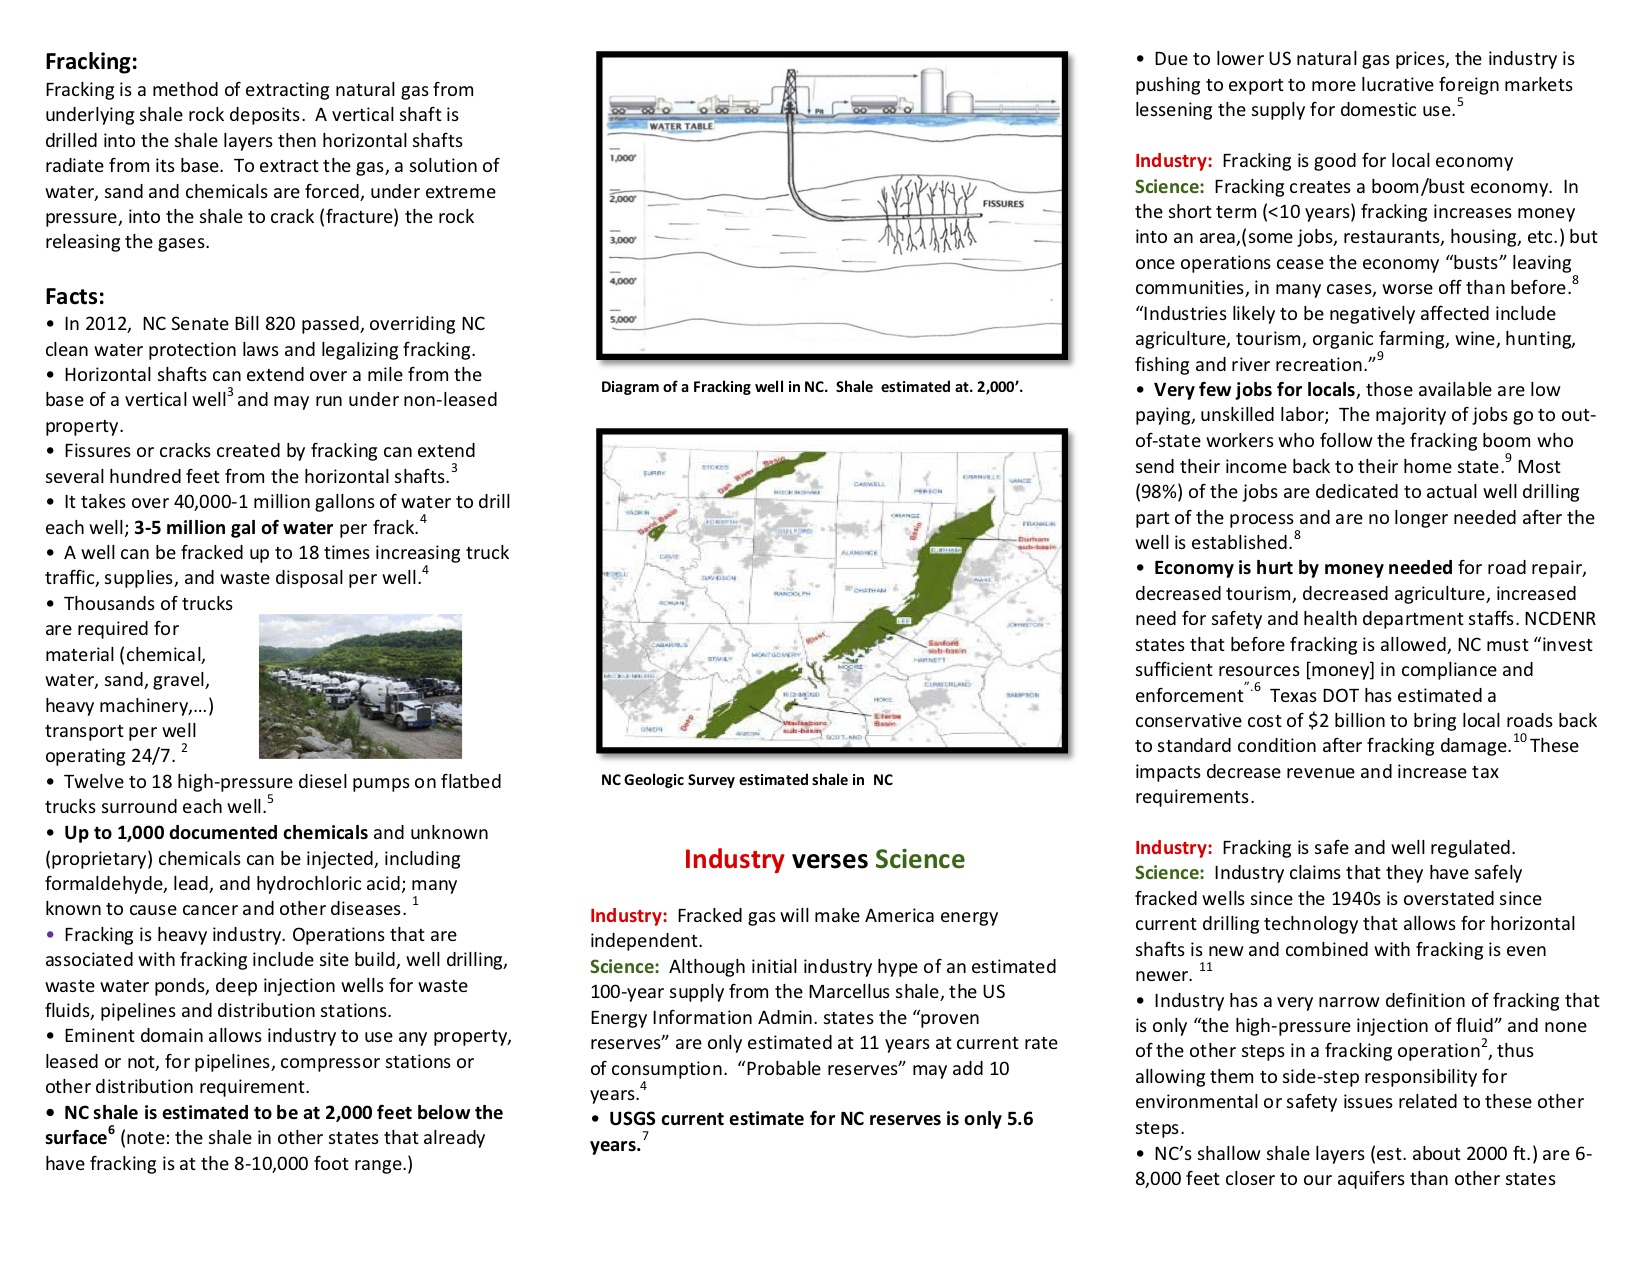 Facts about frack print2.jpg